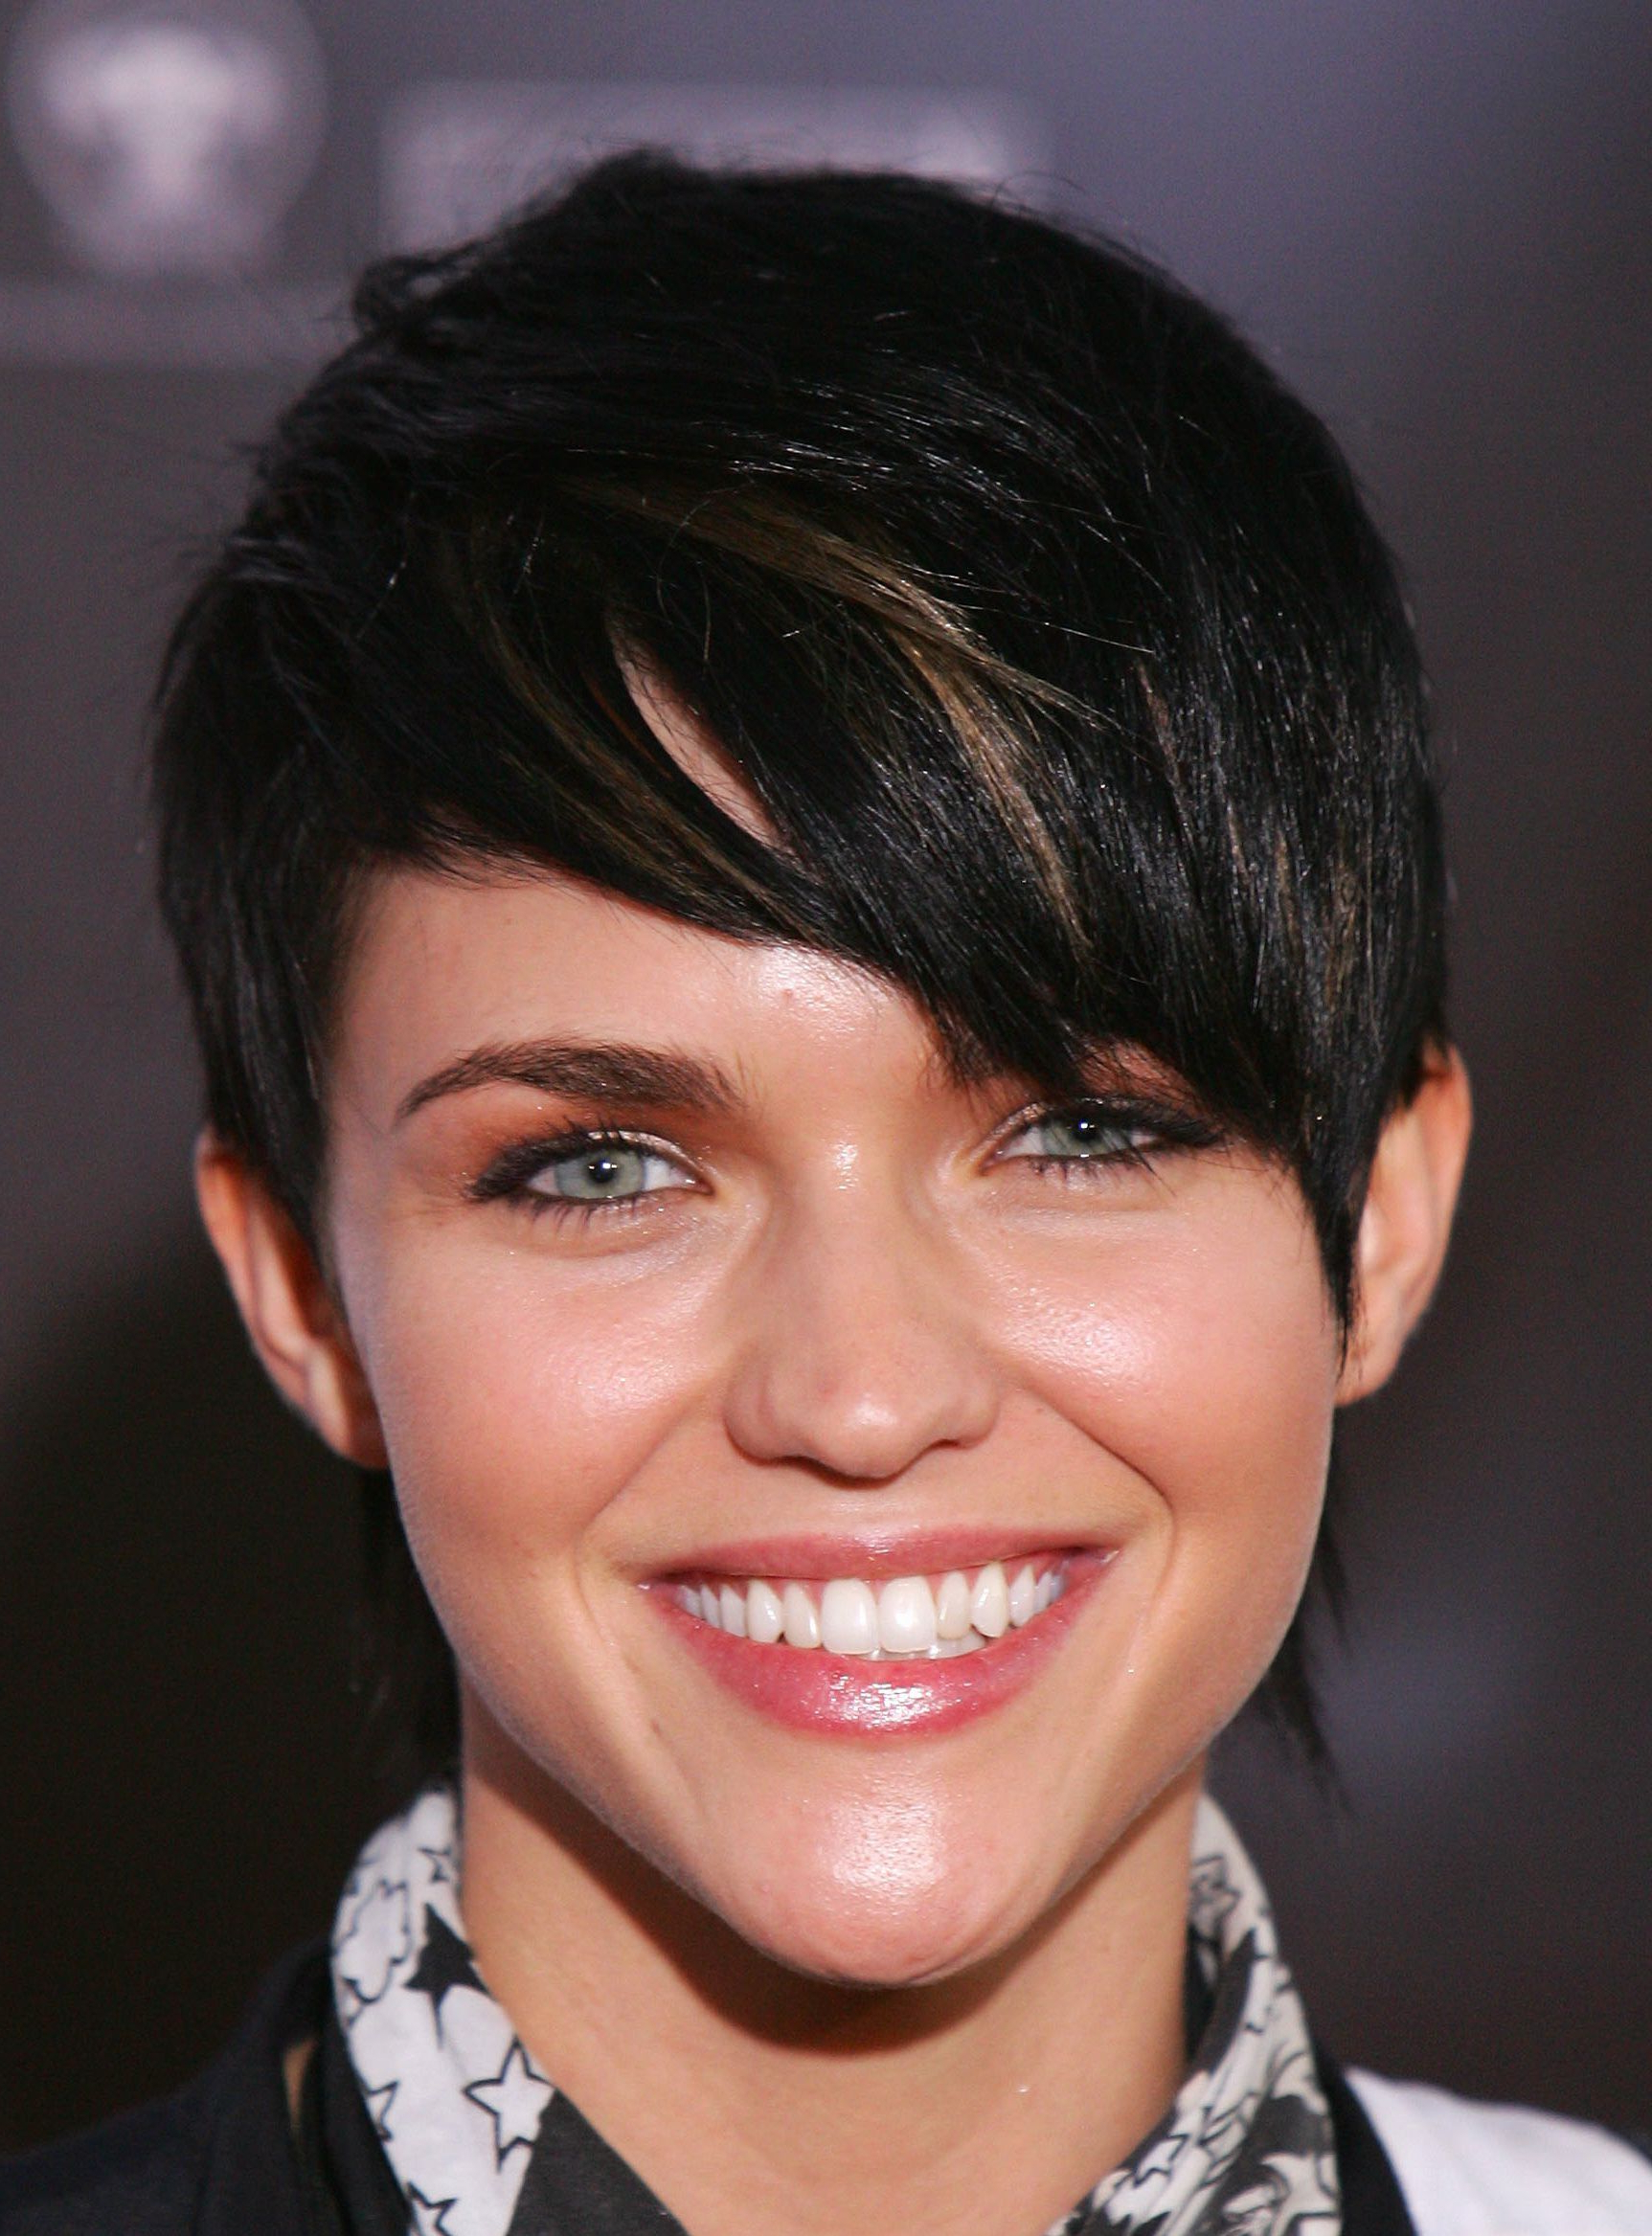 The Best Hairstyles For Women Of Every Body Type Within Most Current Medium Haircuts For Petite Women (View 20 of 20)